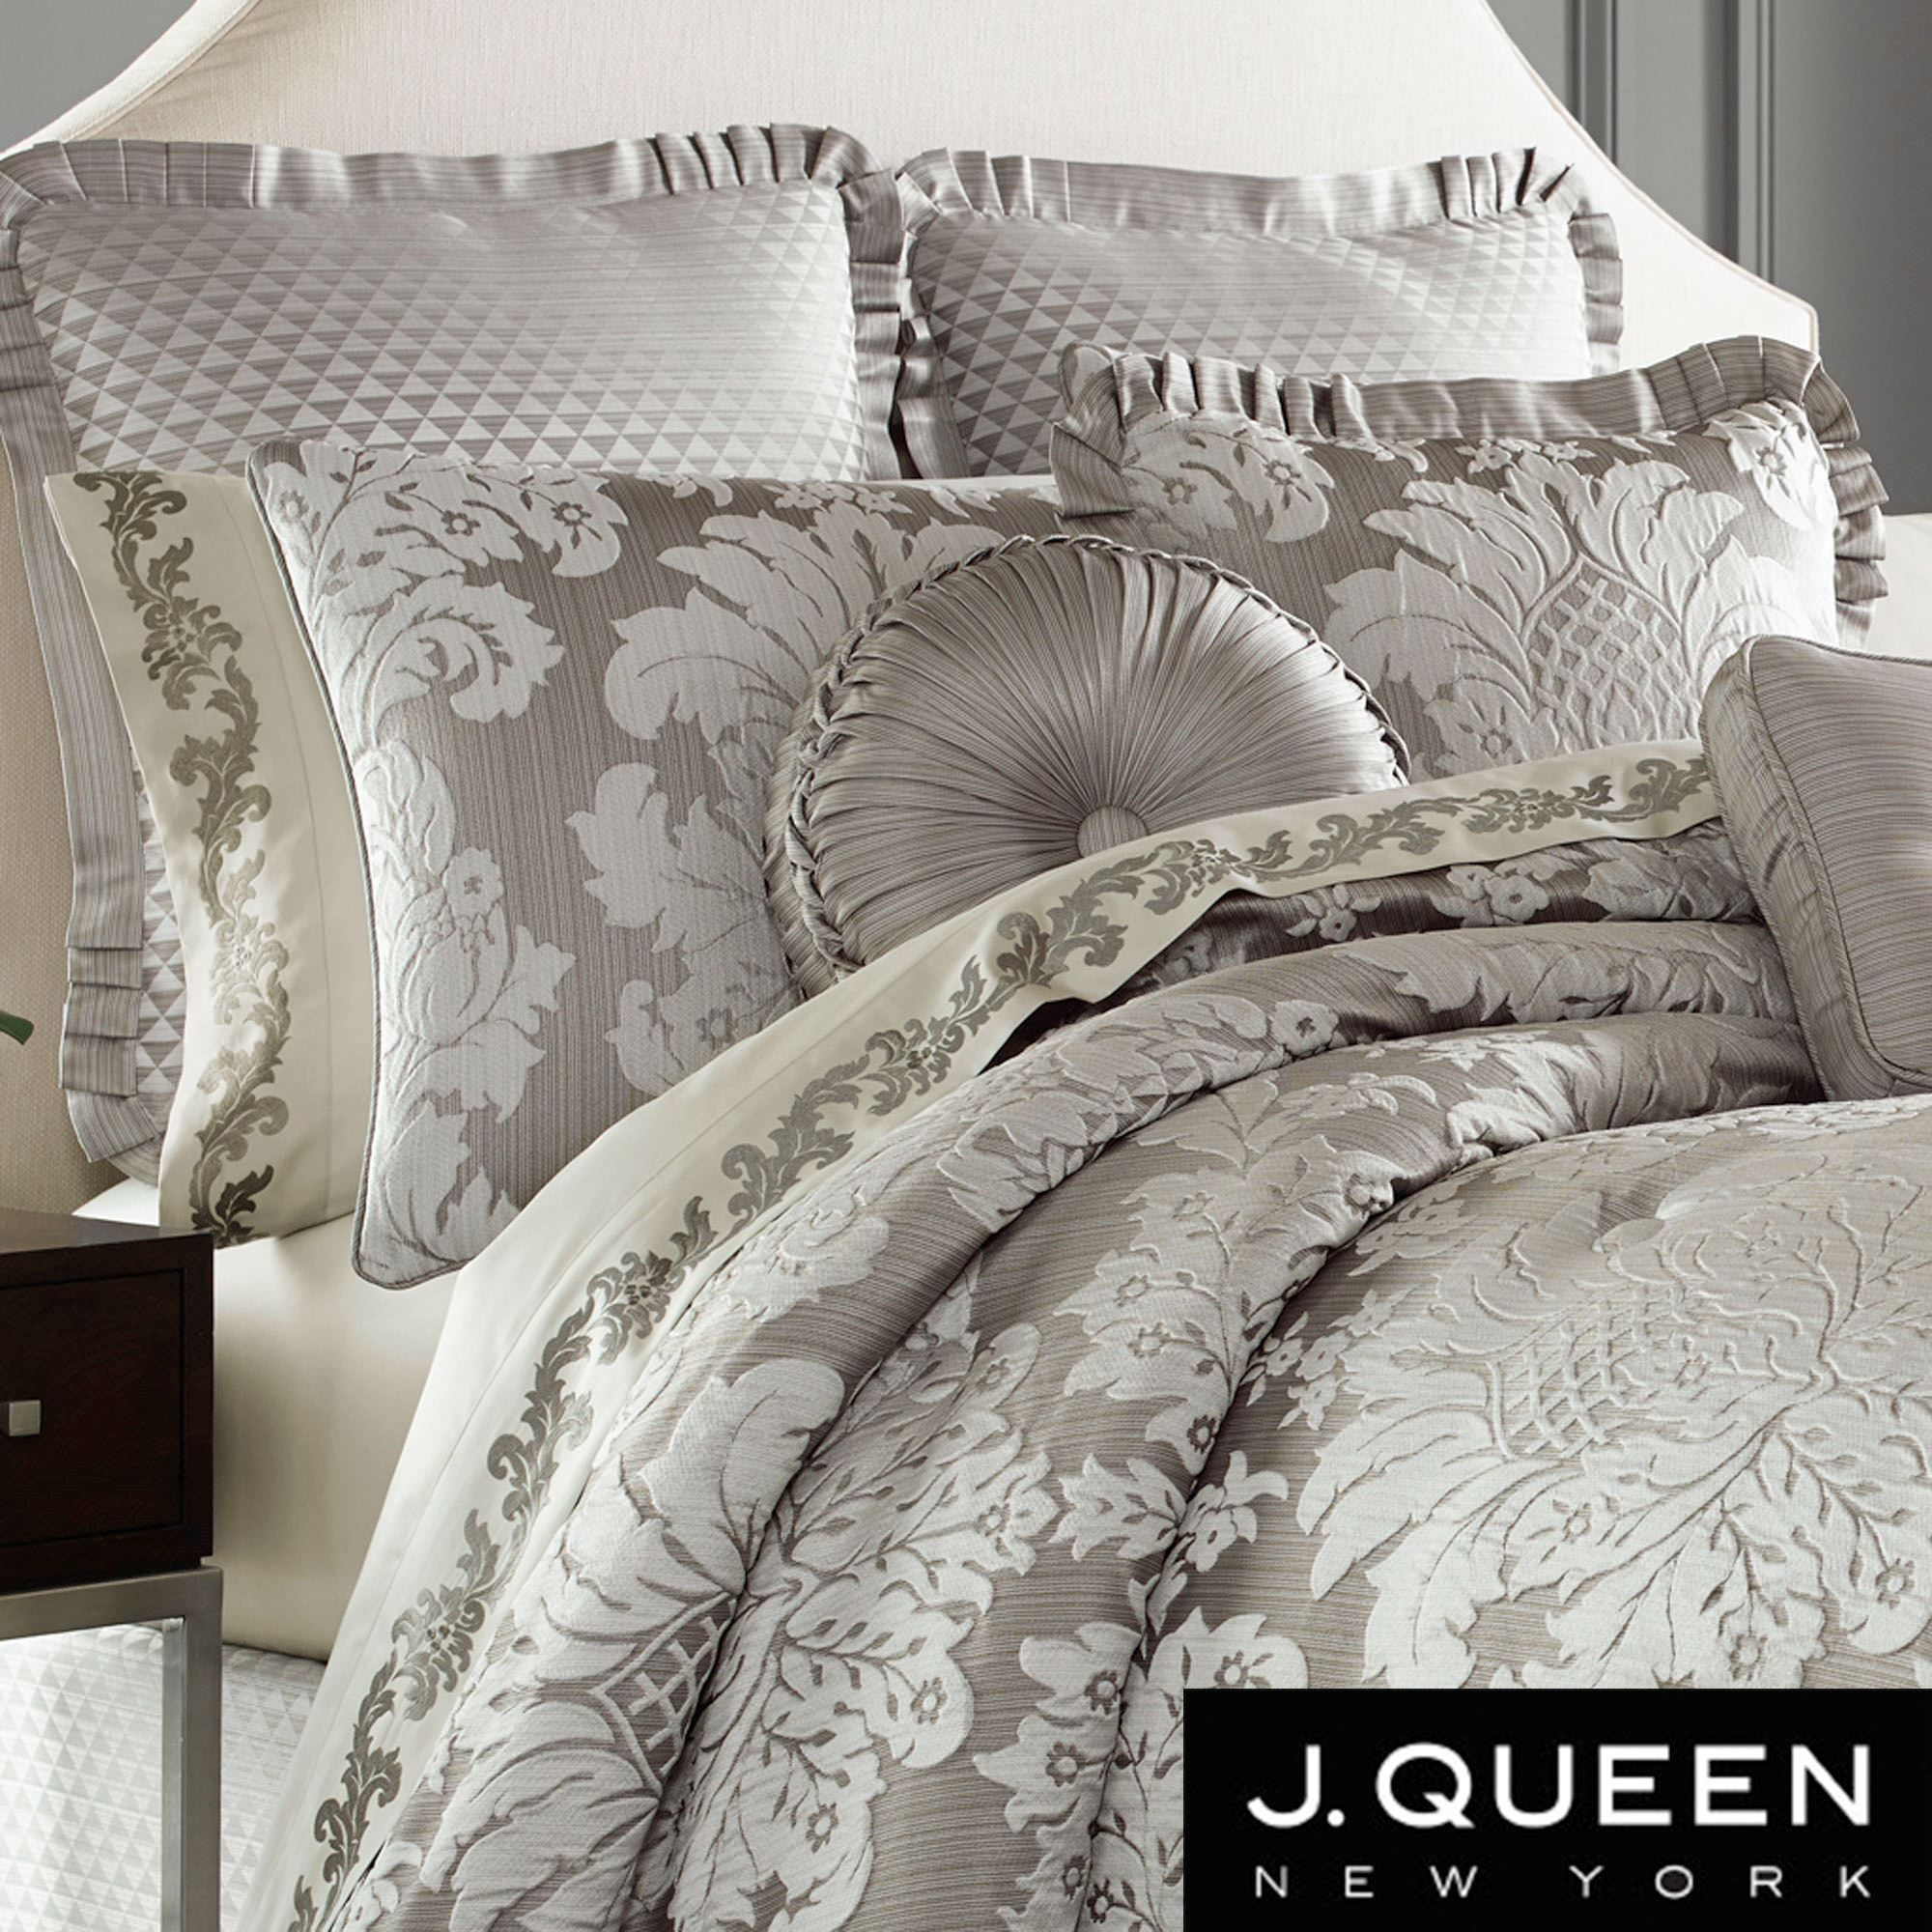 Chandelier Damask forter Bedding by J Queen New York